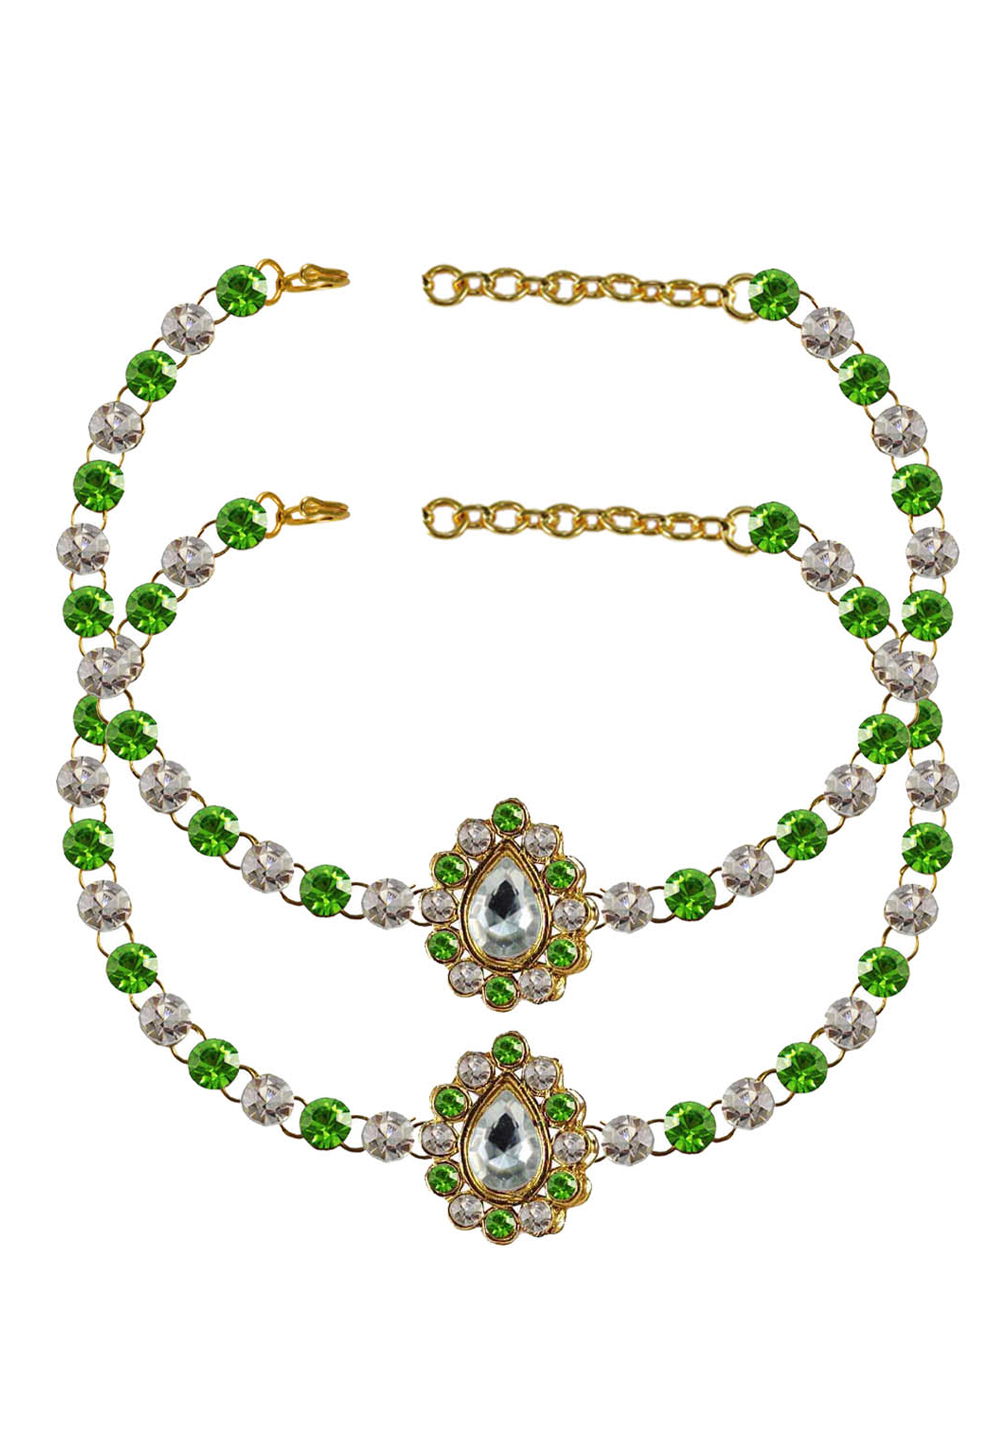 Green Brass Gold Plated Anklets 171361